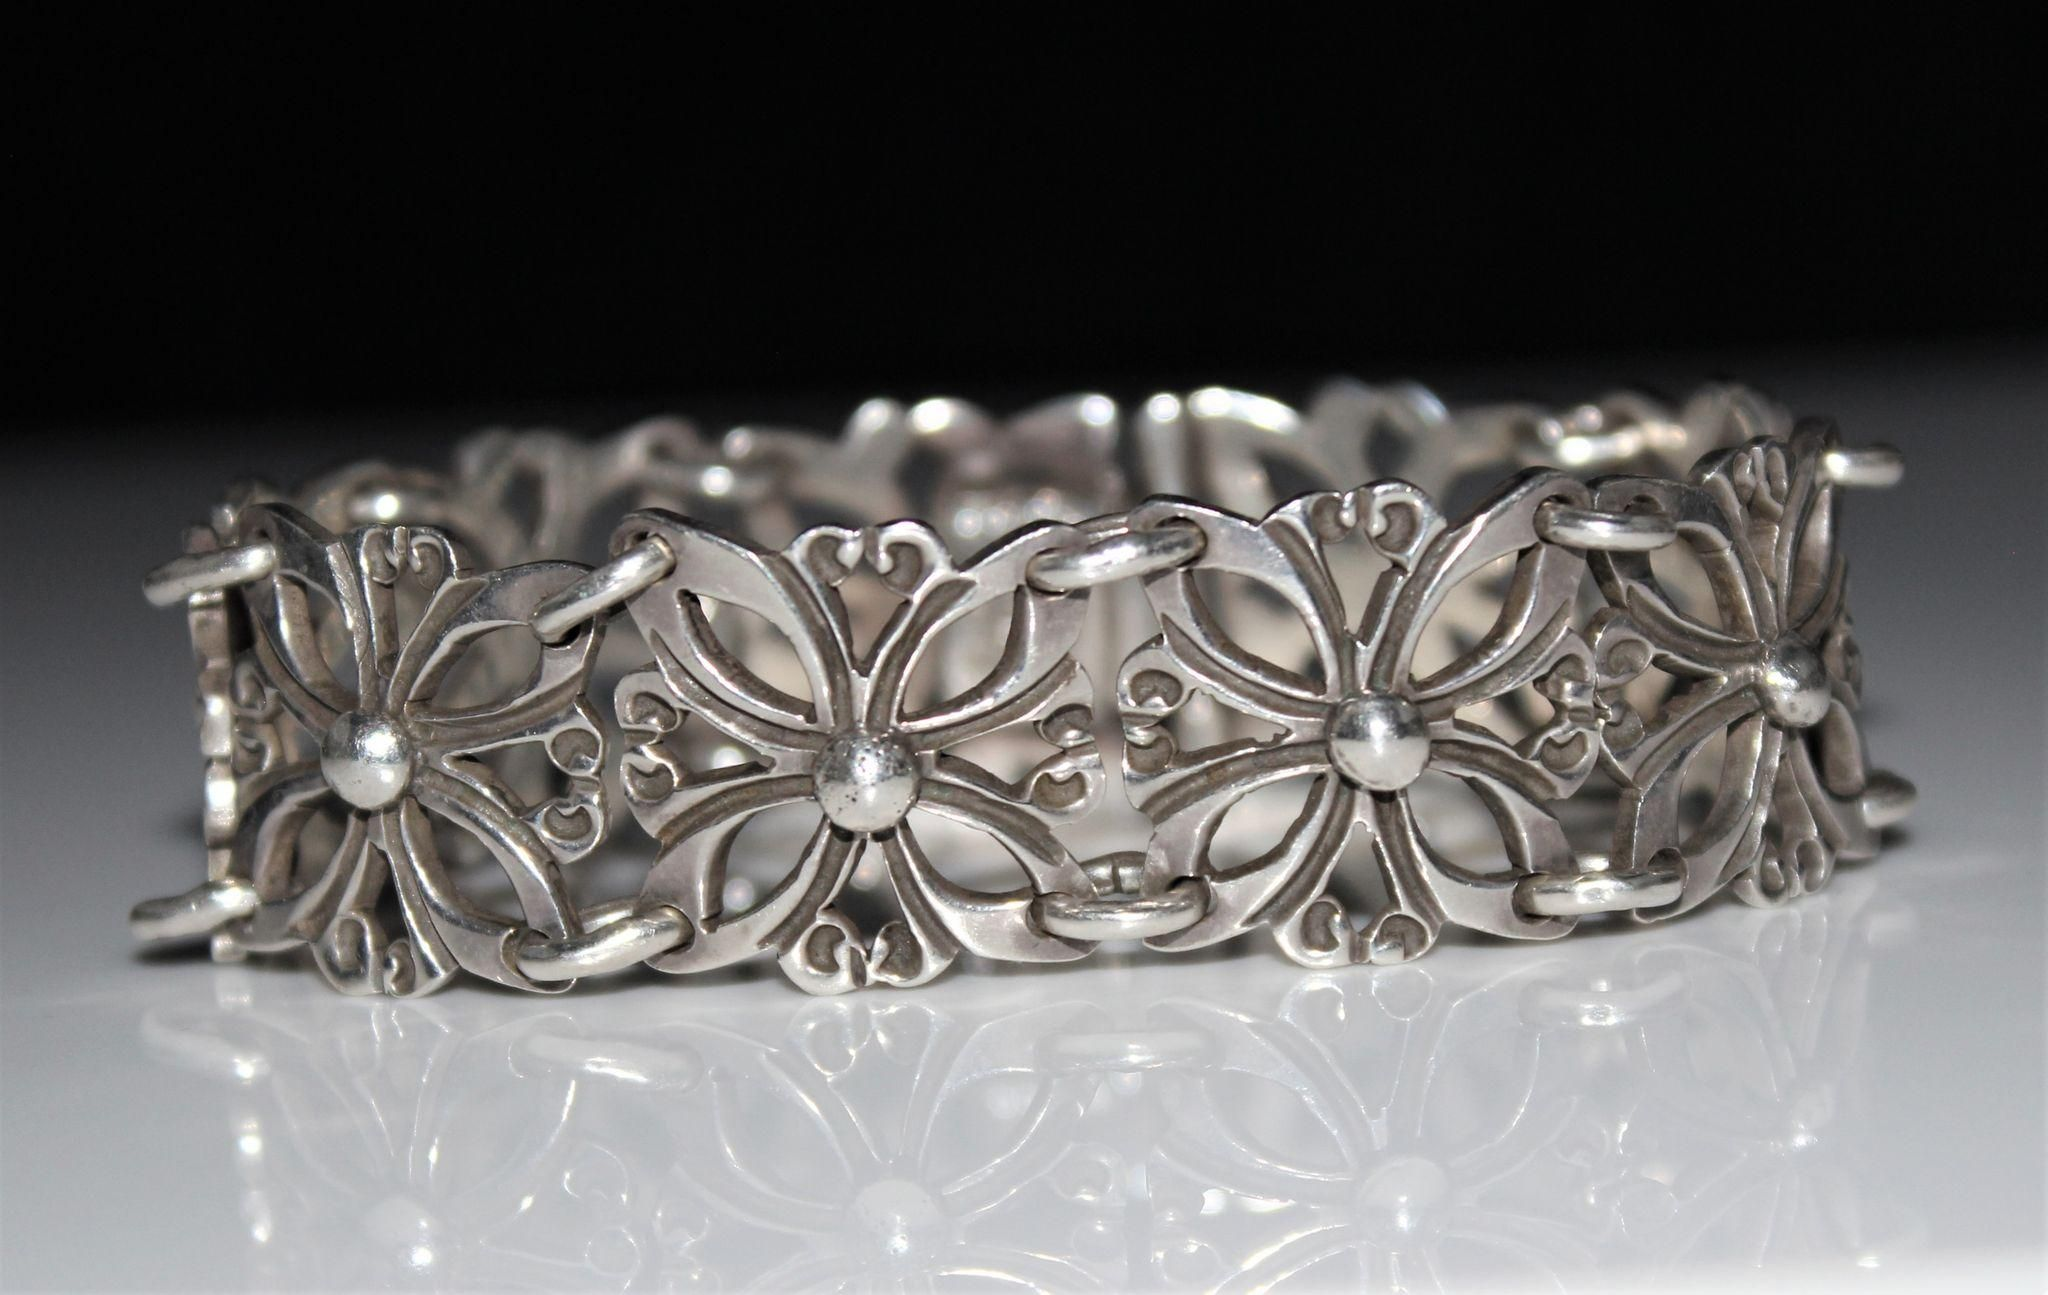 Vintage sterling silver taxco mexico signed open work panel bracelet